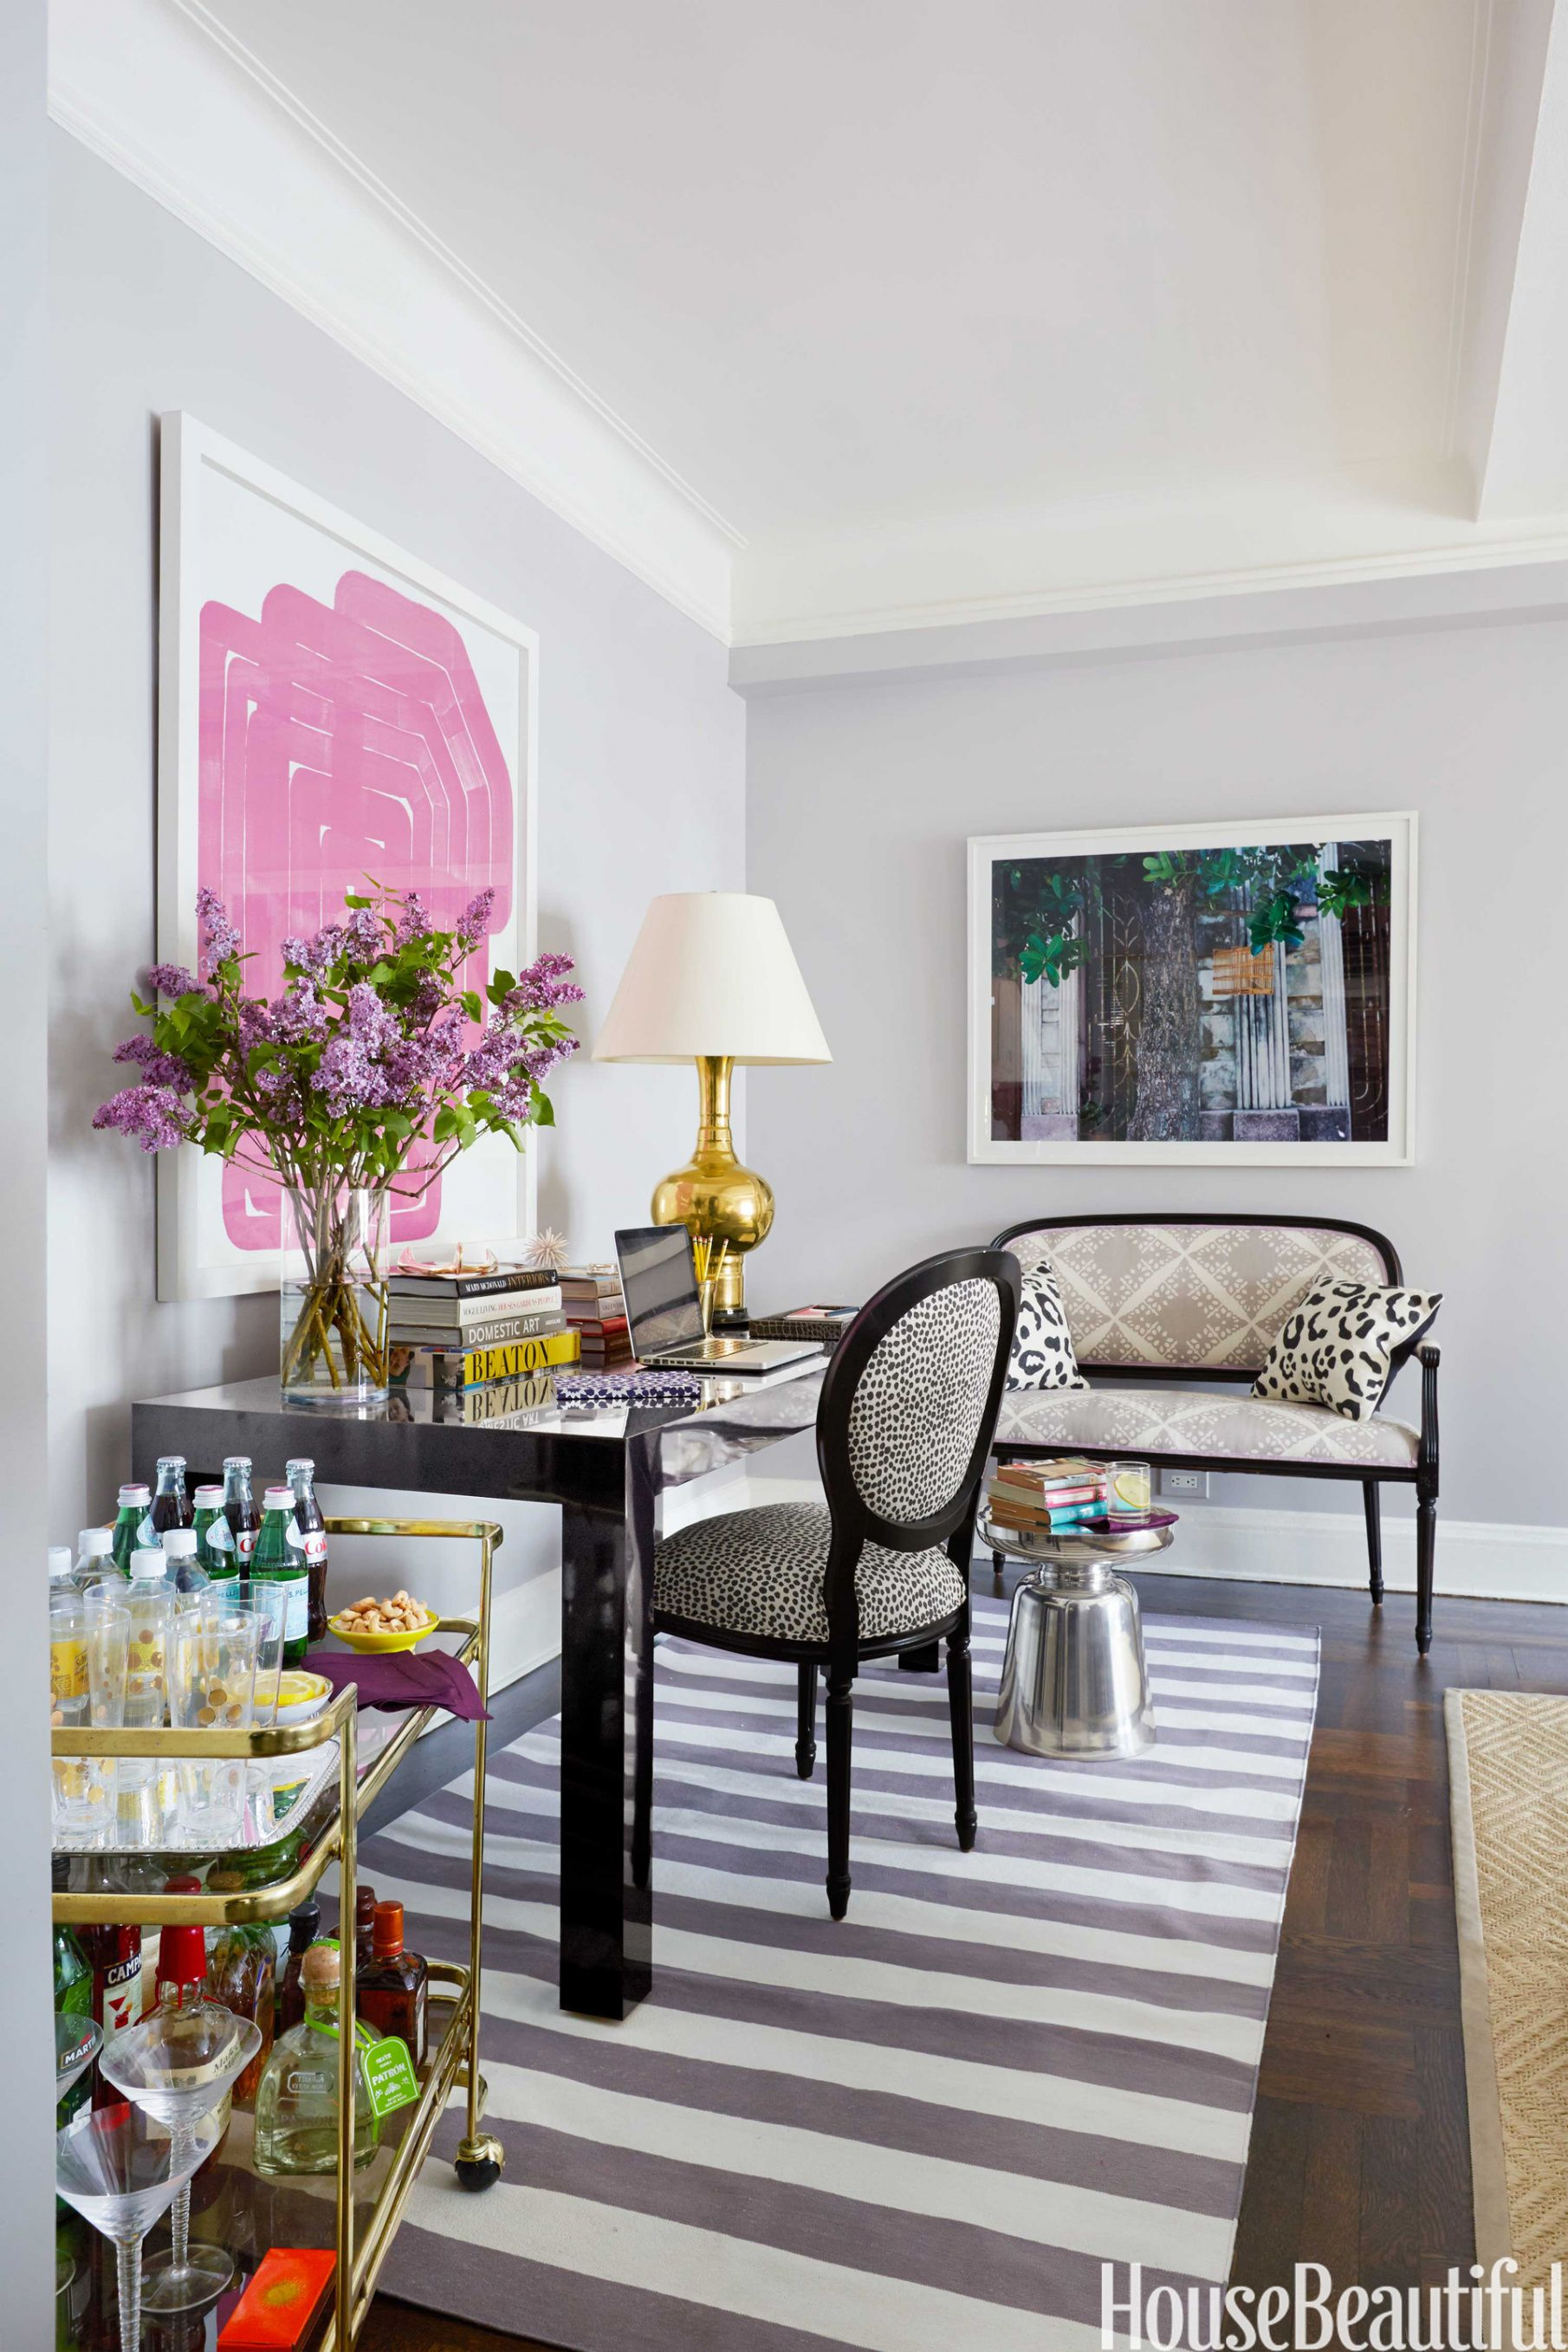 Design For Small Living Room Best Interior Wall Paint Check More At Http Www Freshtalknetwork Small Living Room Decor Small Living Rooms Small Room Design #paint #small #living #room